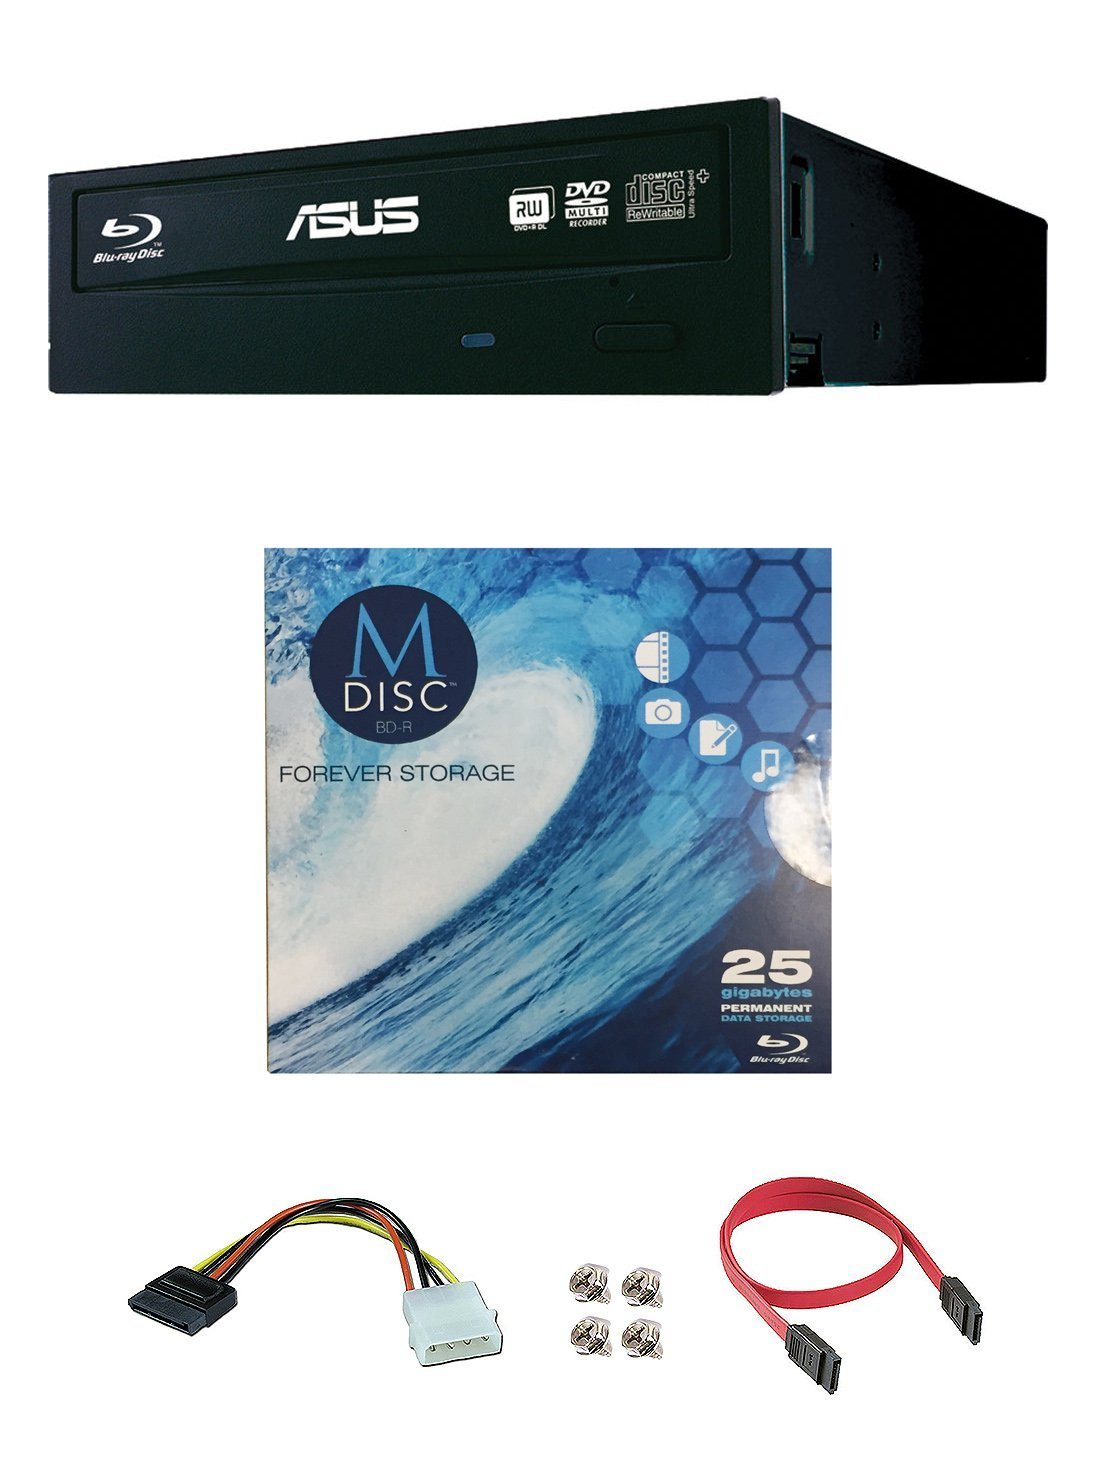 Asus 12x BW-12B1ST Internal Blu-ray Burner Drive Bundle with 1 Pack M-DISC BD and Cable Accessories (Retail Box)